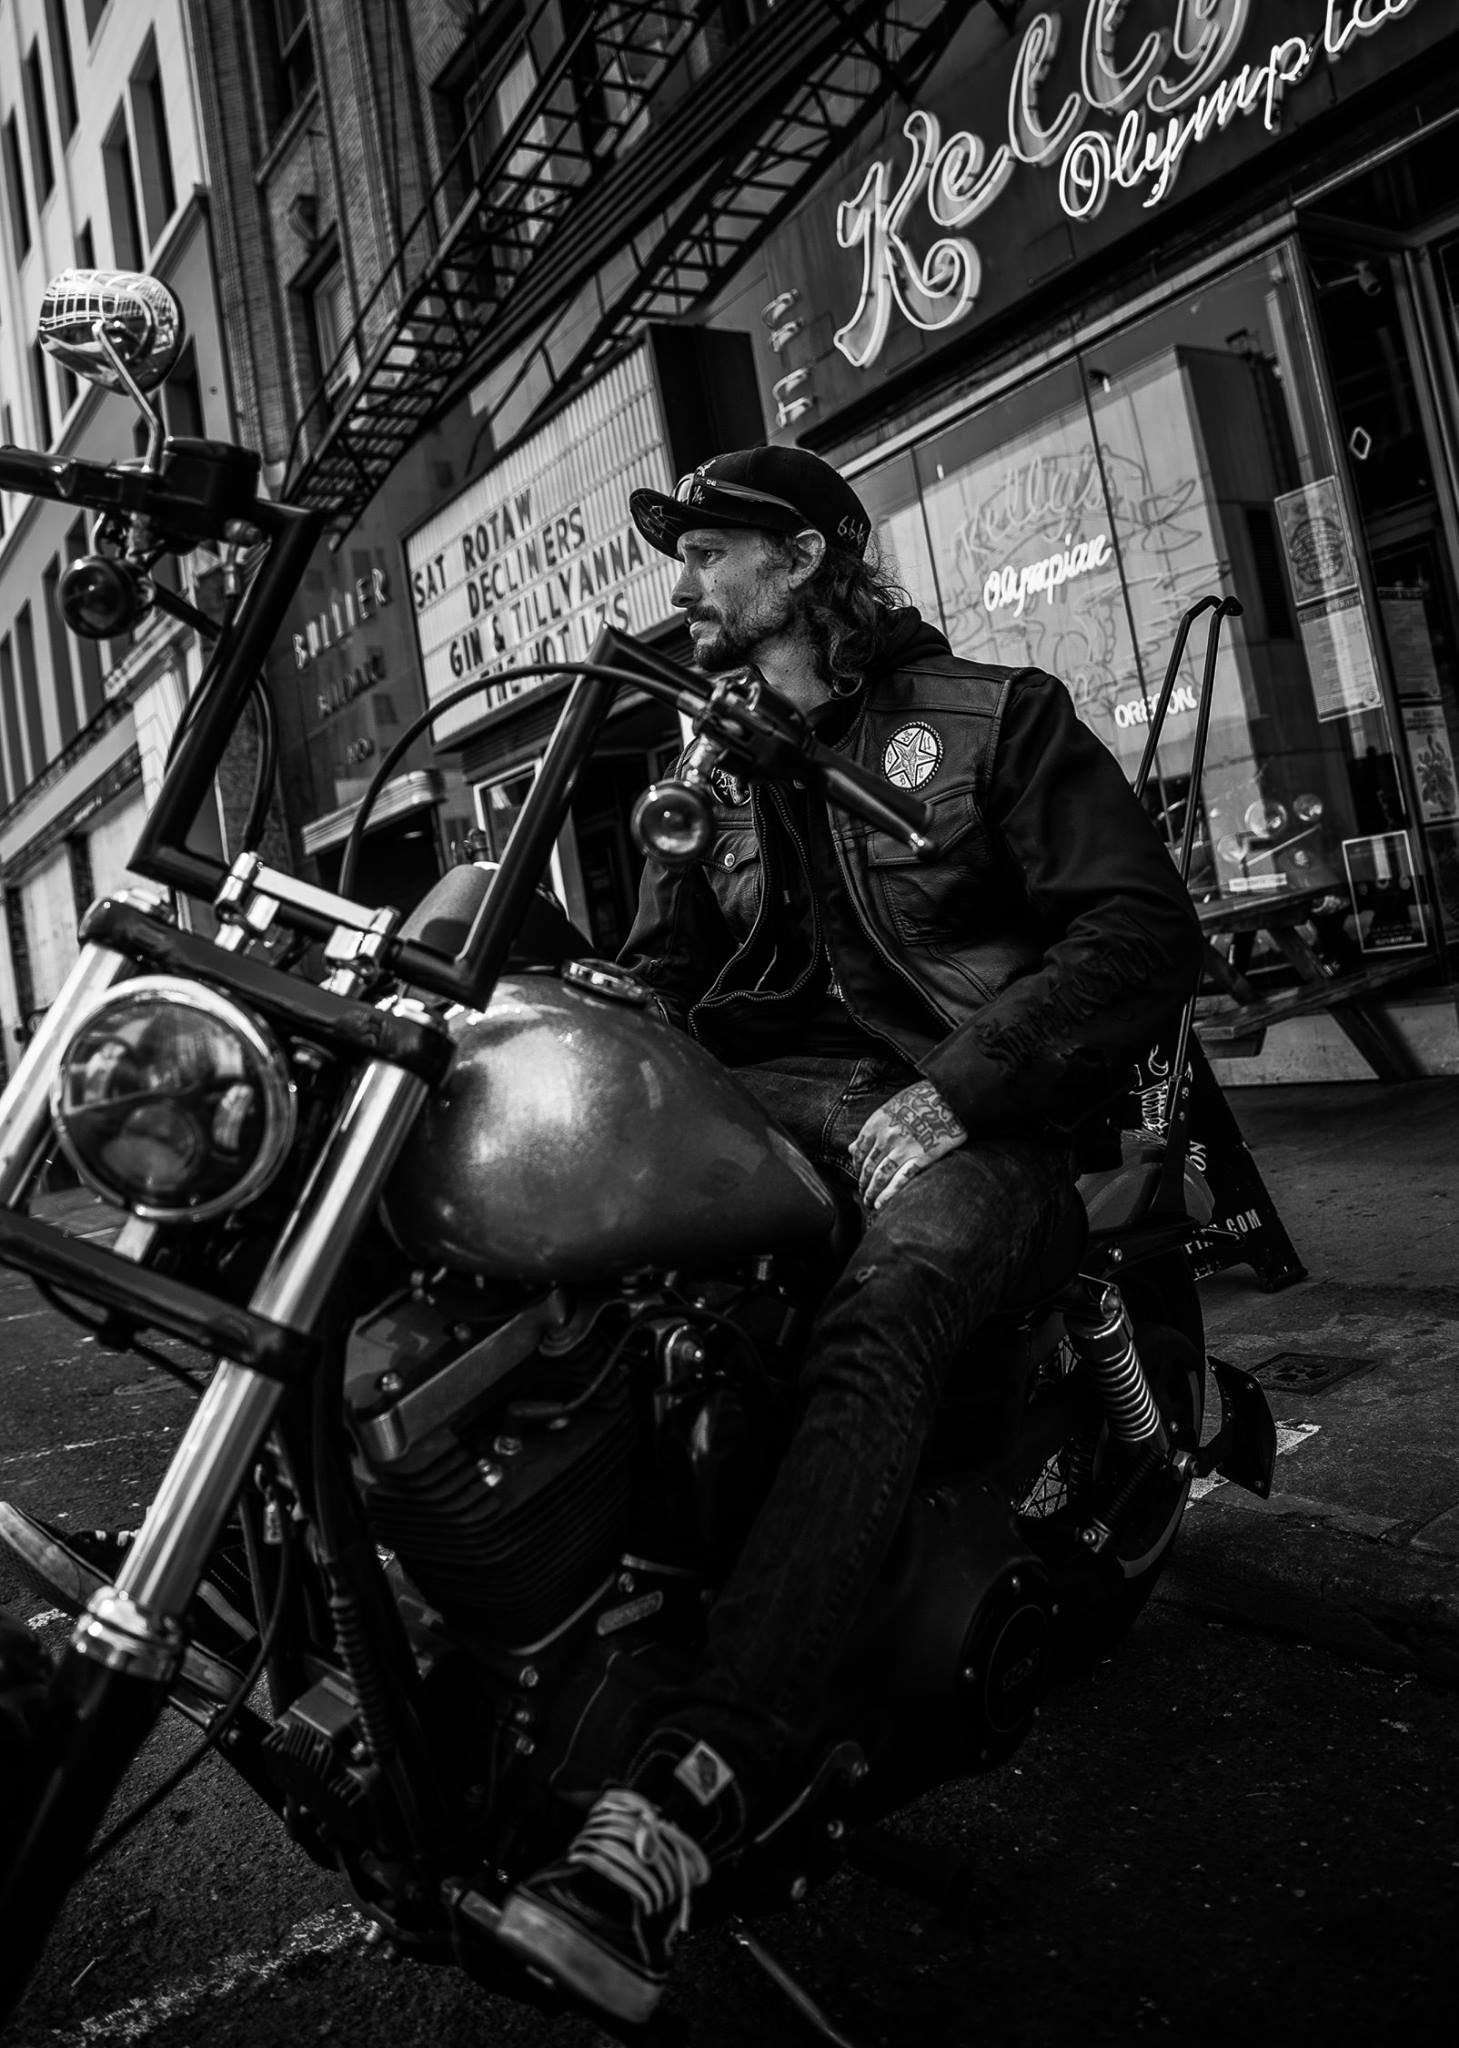 Tom_Lupton_Portrait_Photography_Street_Motorcycle.jpg